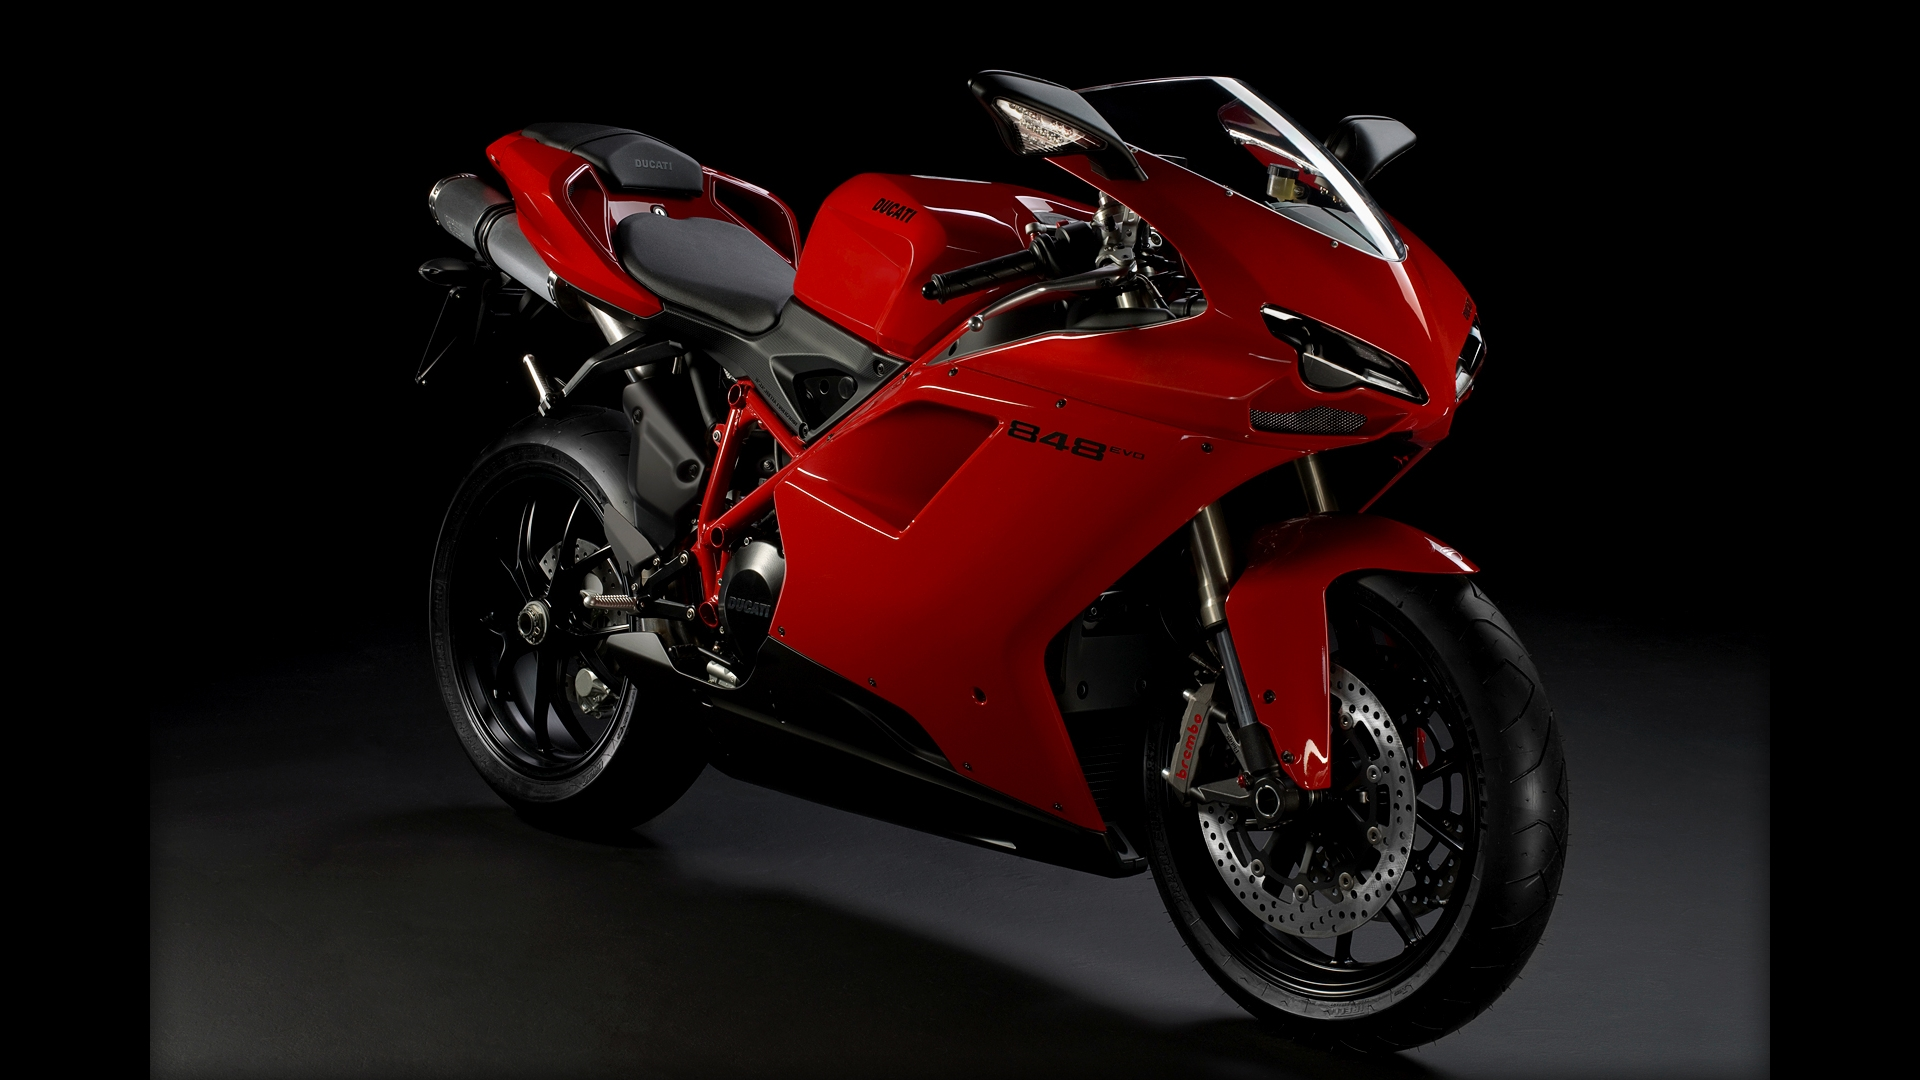 2013 Ducati Superbike 848 EVO | Top Speed